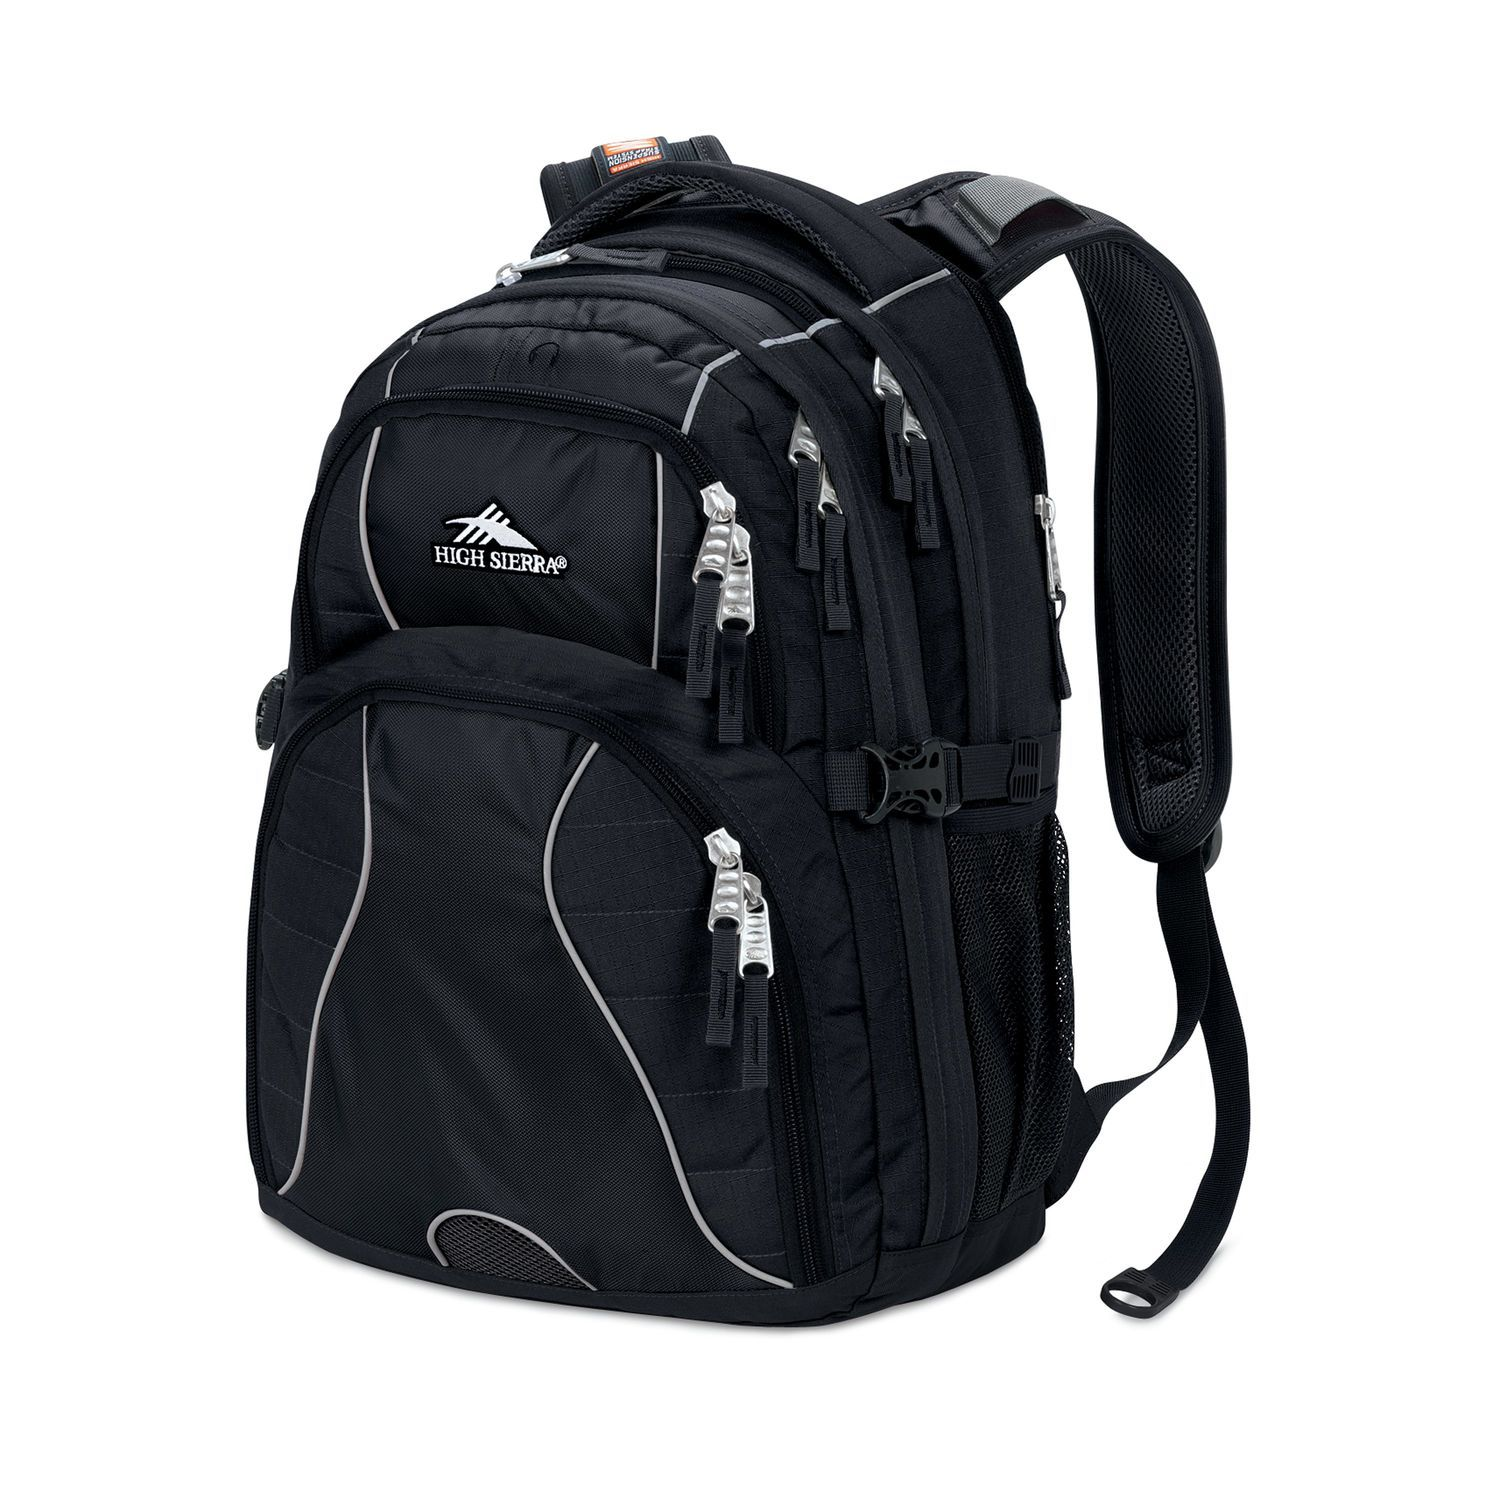 97d70530874d High Sierra Backpack Target- Fenix Toulouse Handball